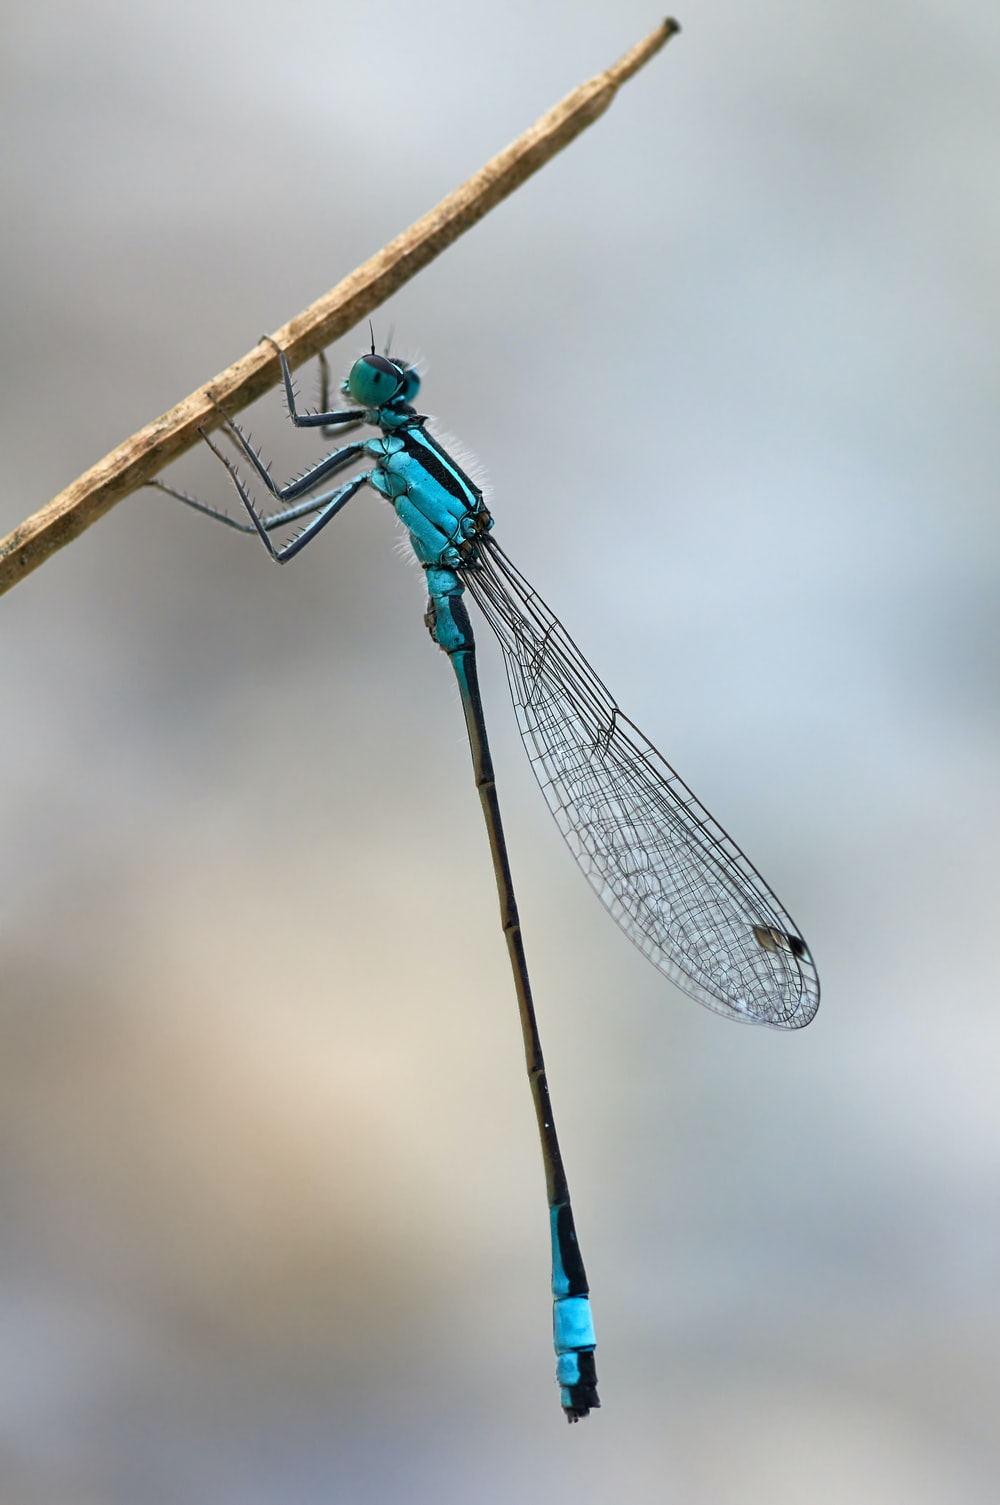 blue damselfly perched on brown stick in close up photography during daytime